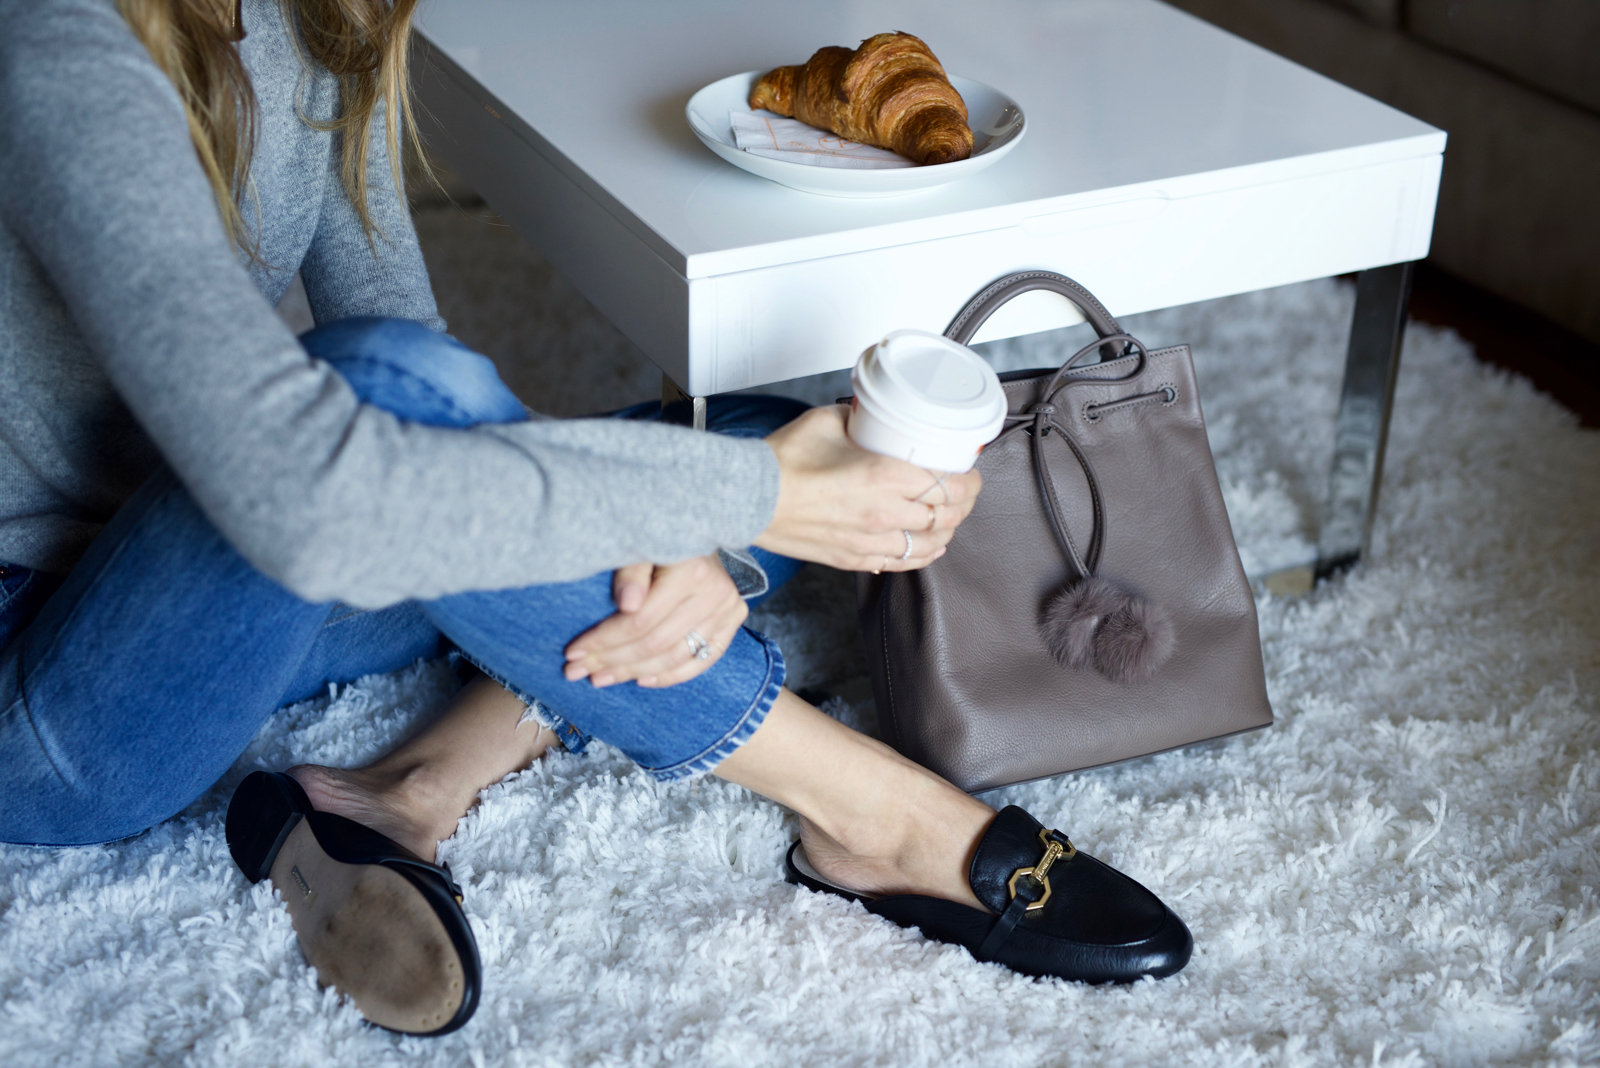 Louise et Cie, Mules, Grey bag, Paris, jeans, croissants